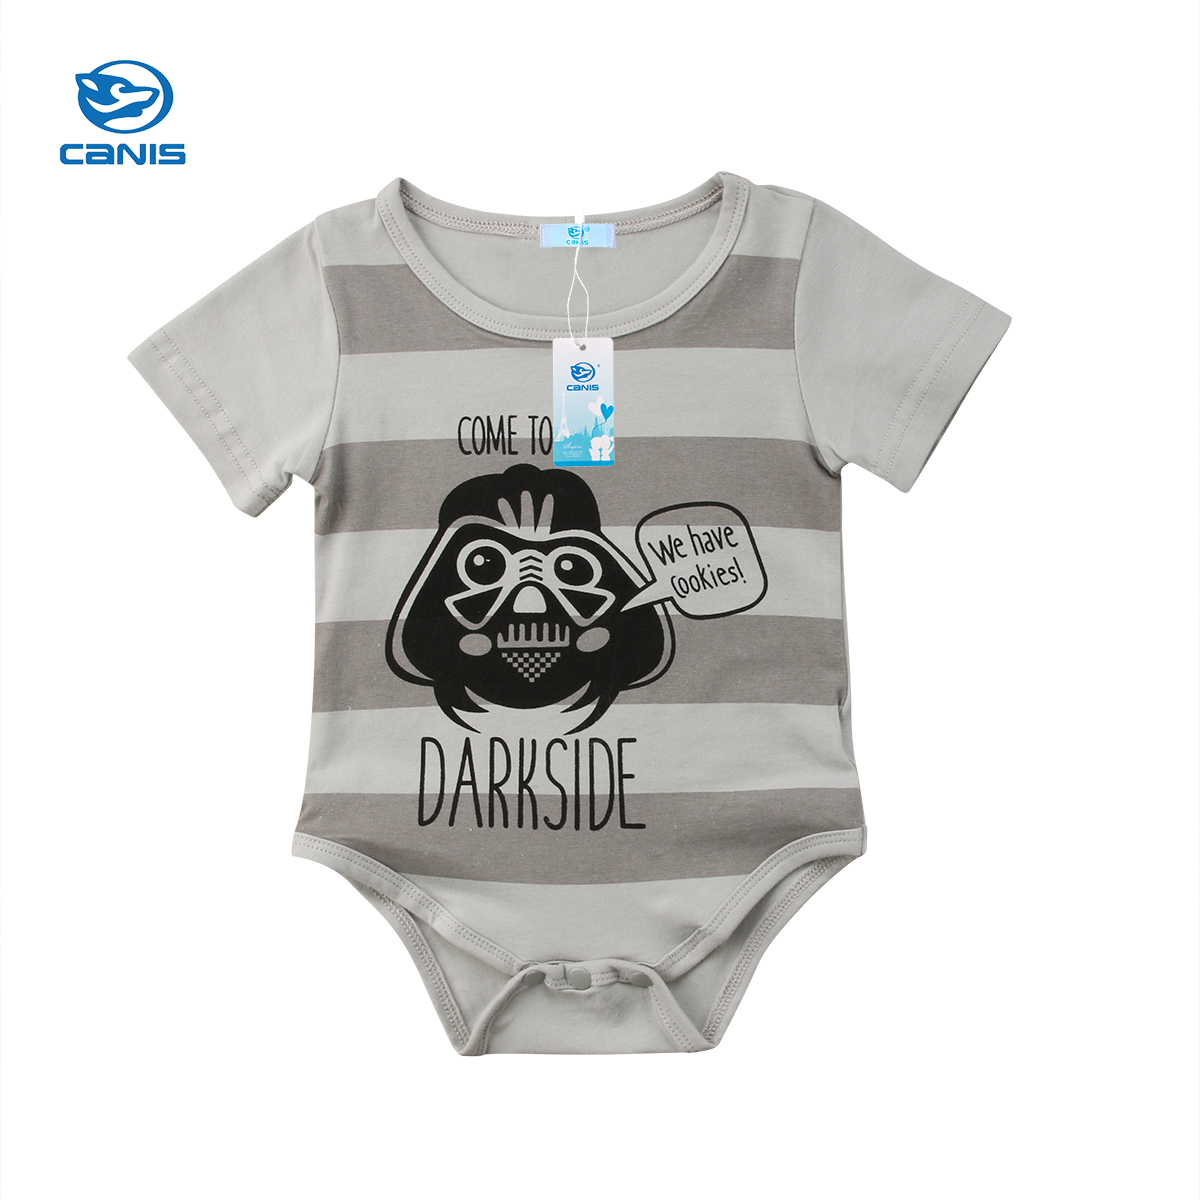 Toddler Baby Romper Summer Clothes Newborn Kids Baby Boy Girl Star Wars Romper Jumpsuit Outfits Clothes 0-18M